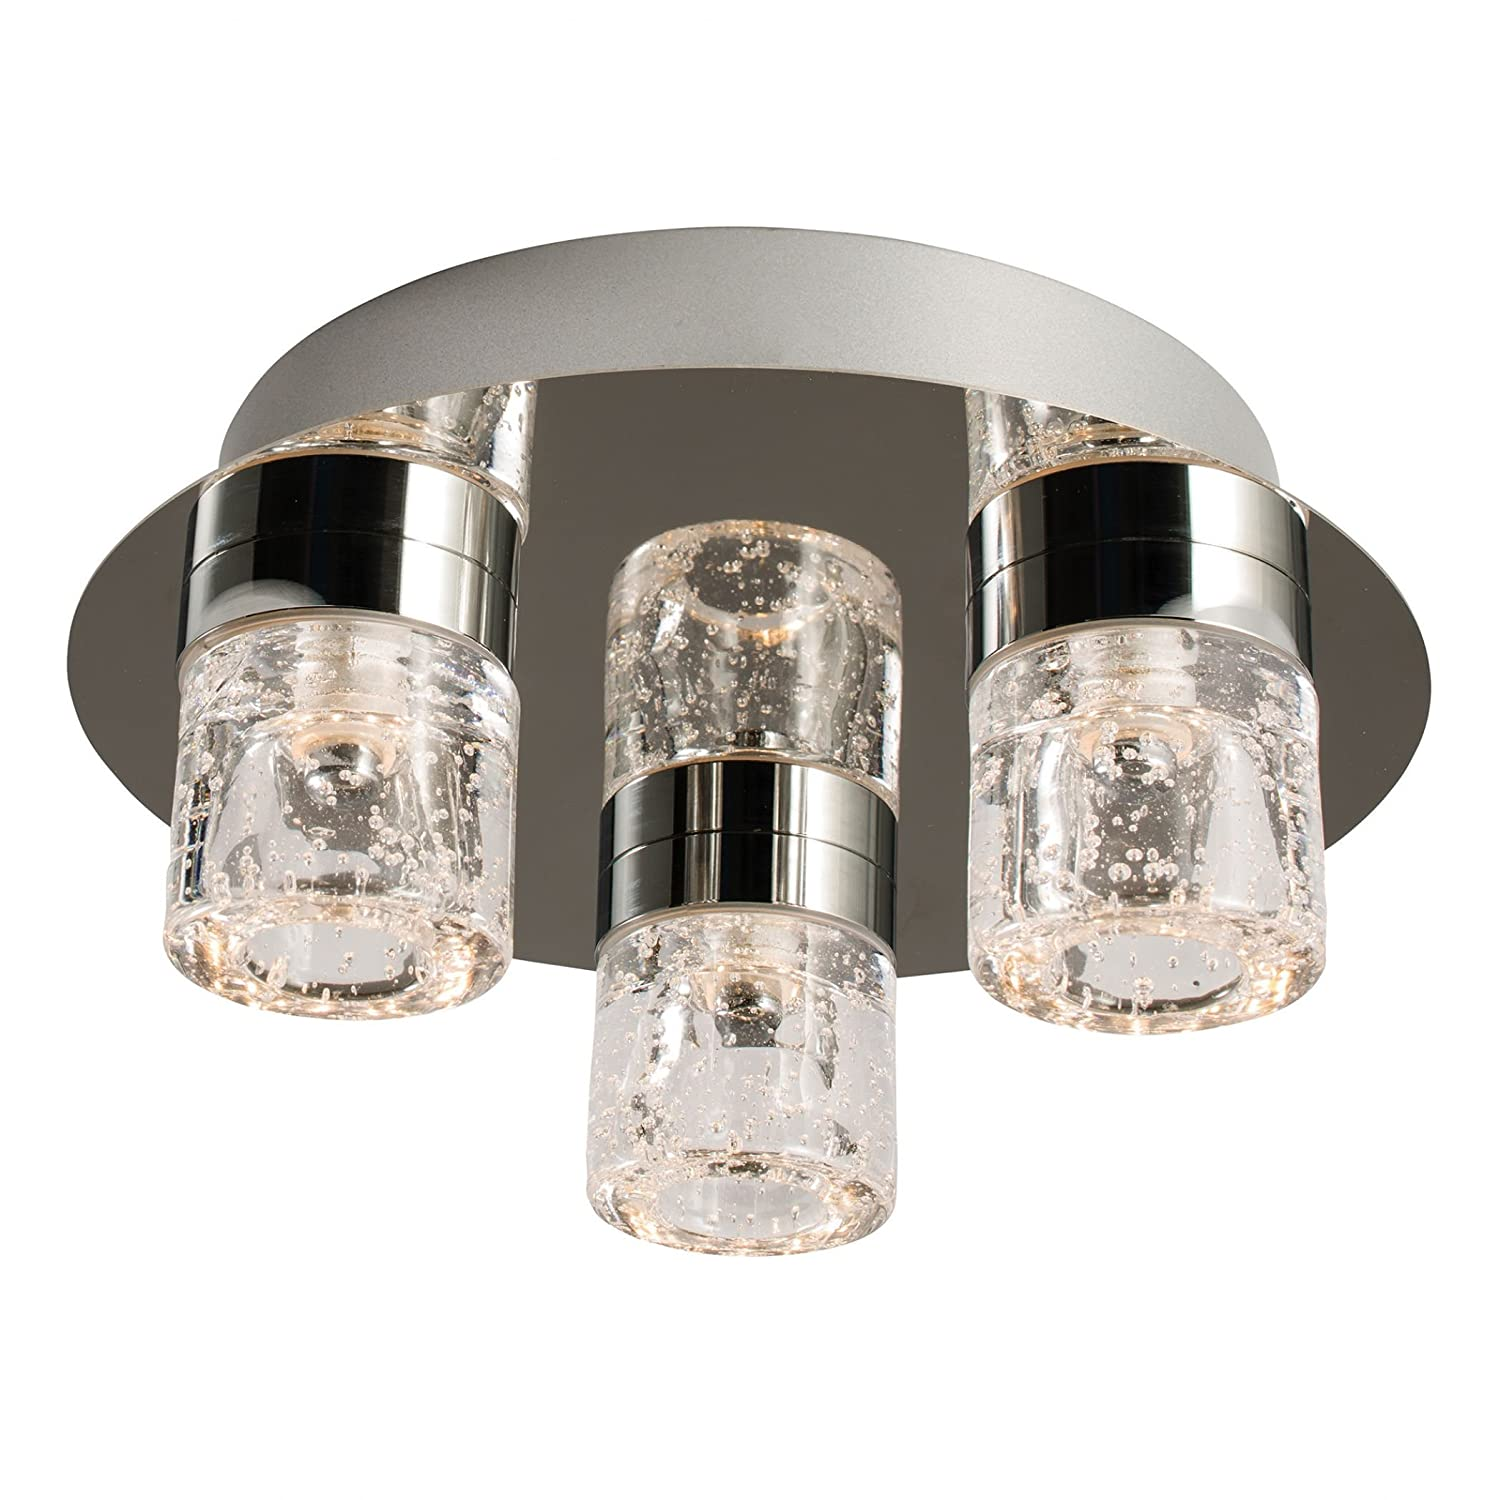 Endon Imperial flush IP44 Endon Lighting